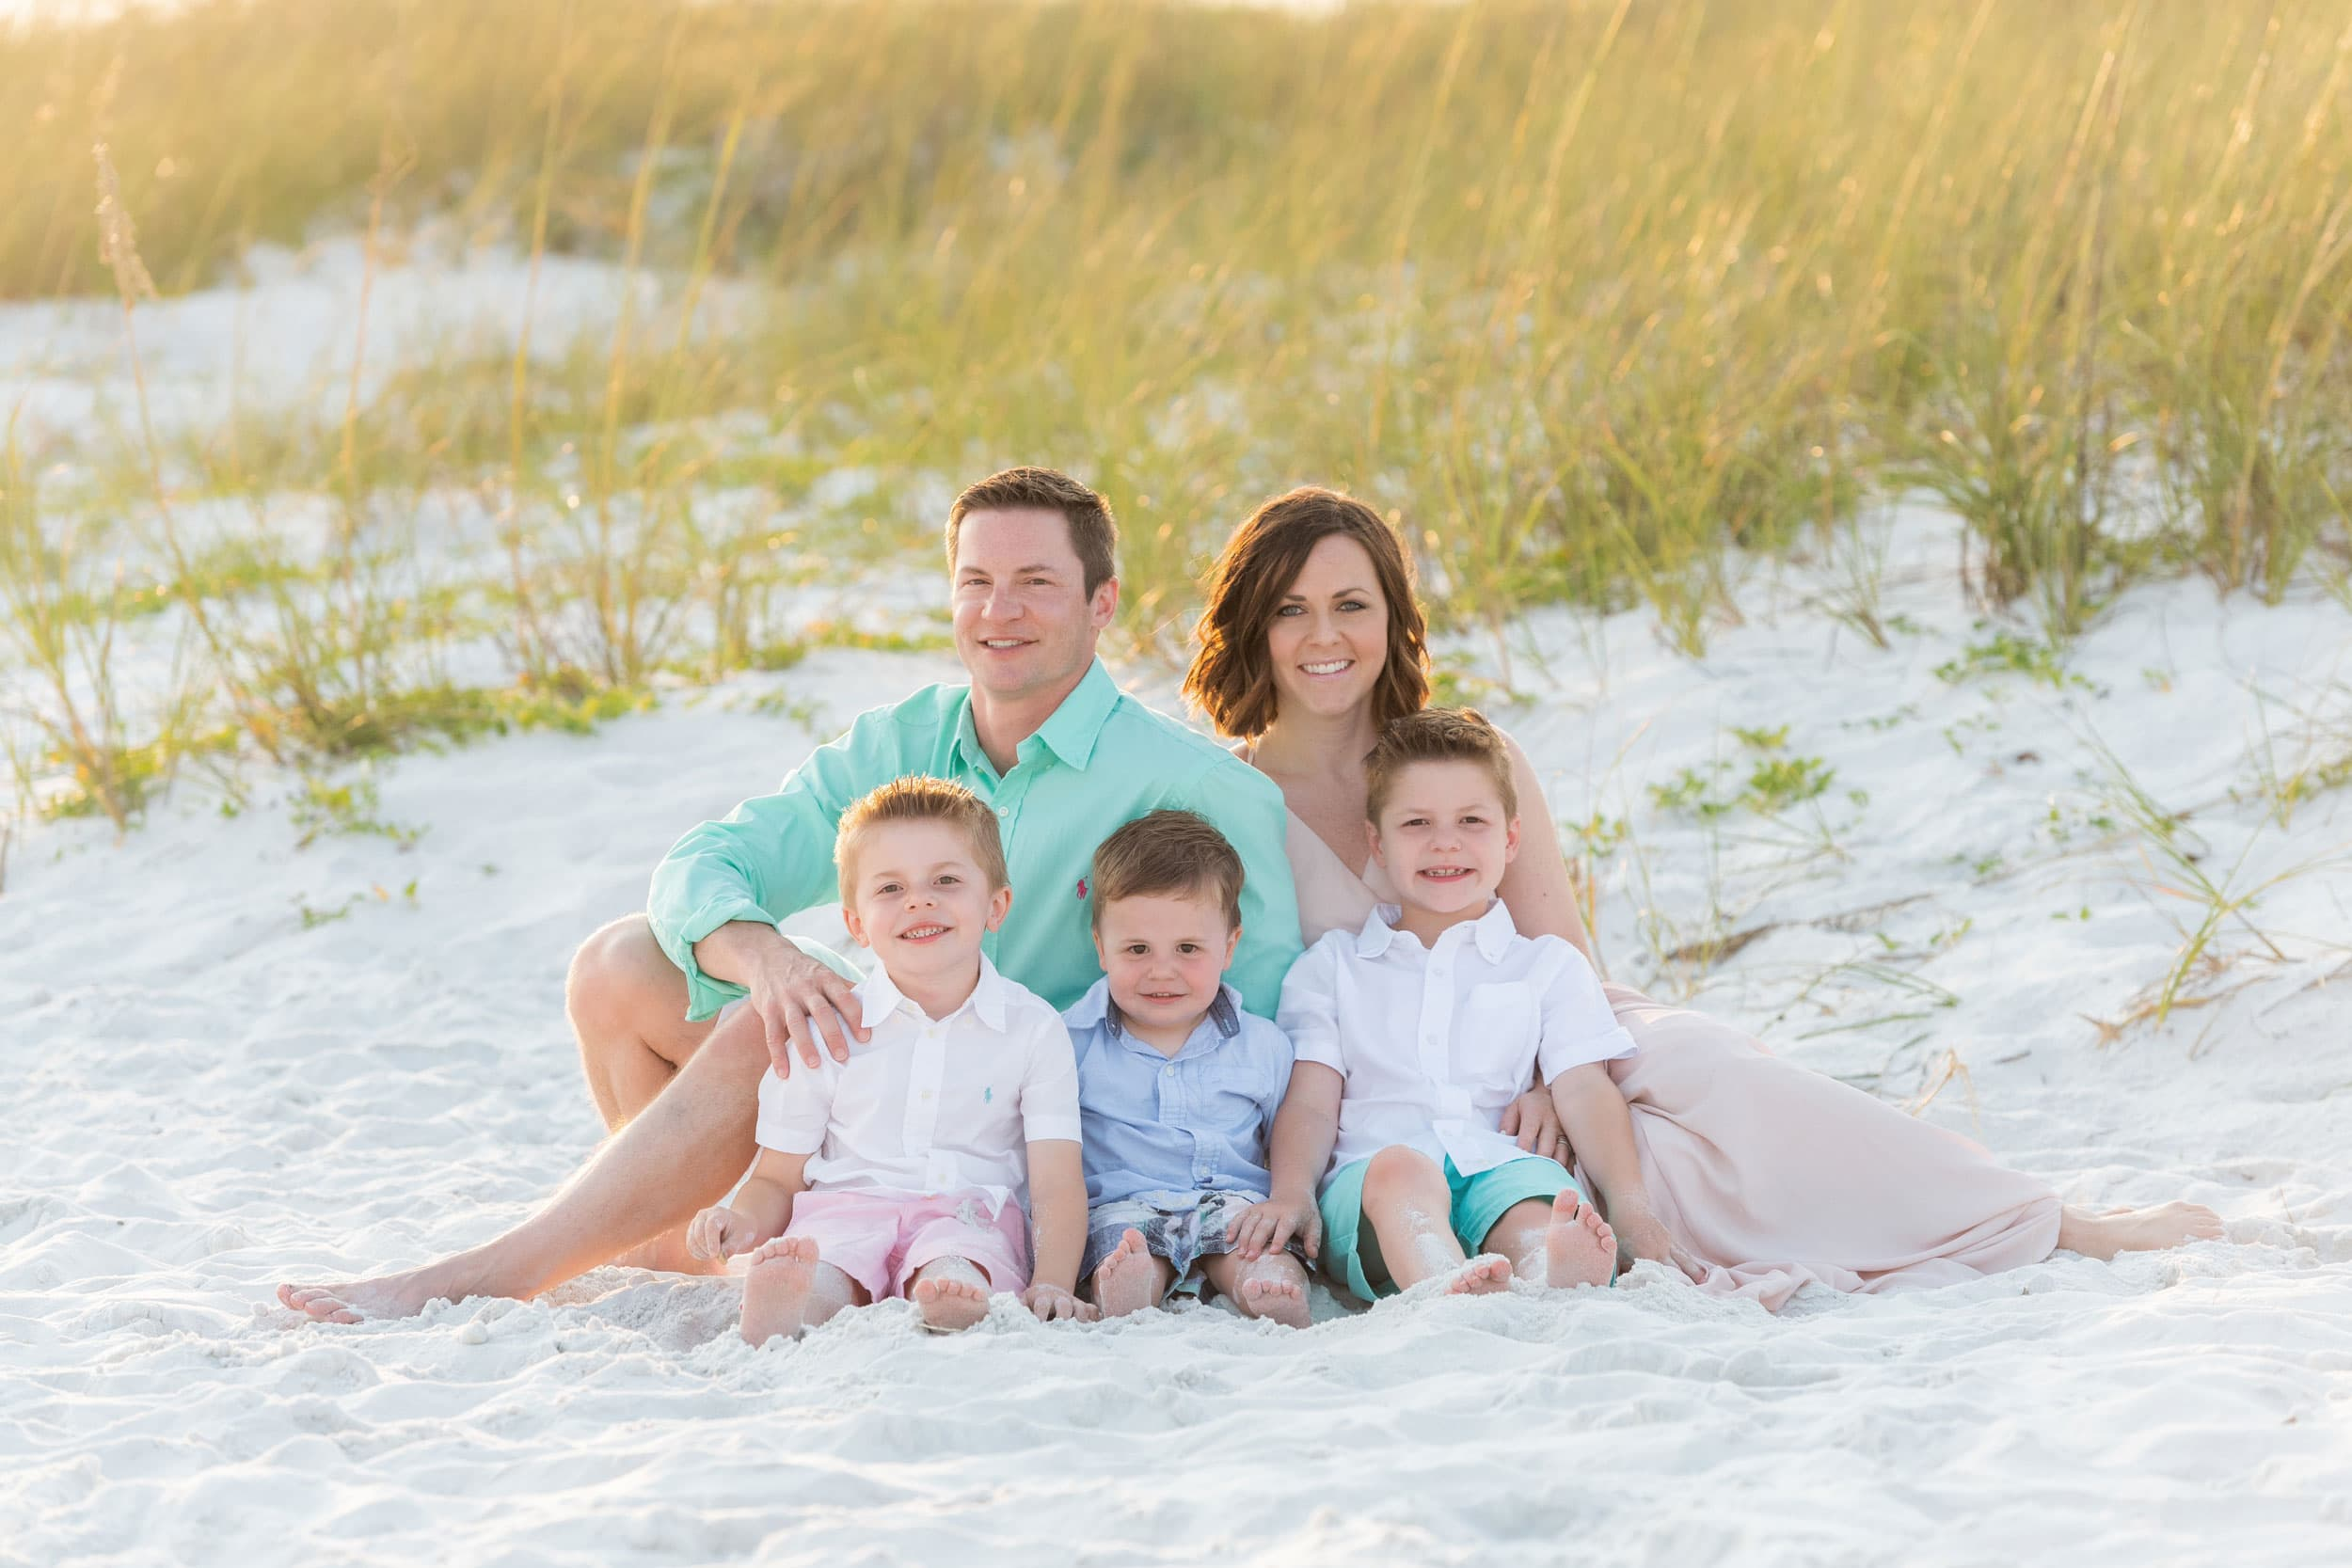 destin beach photographer session with children playing in the sand